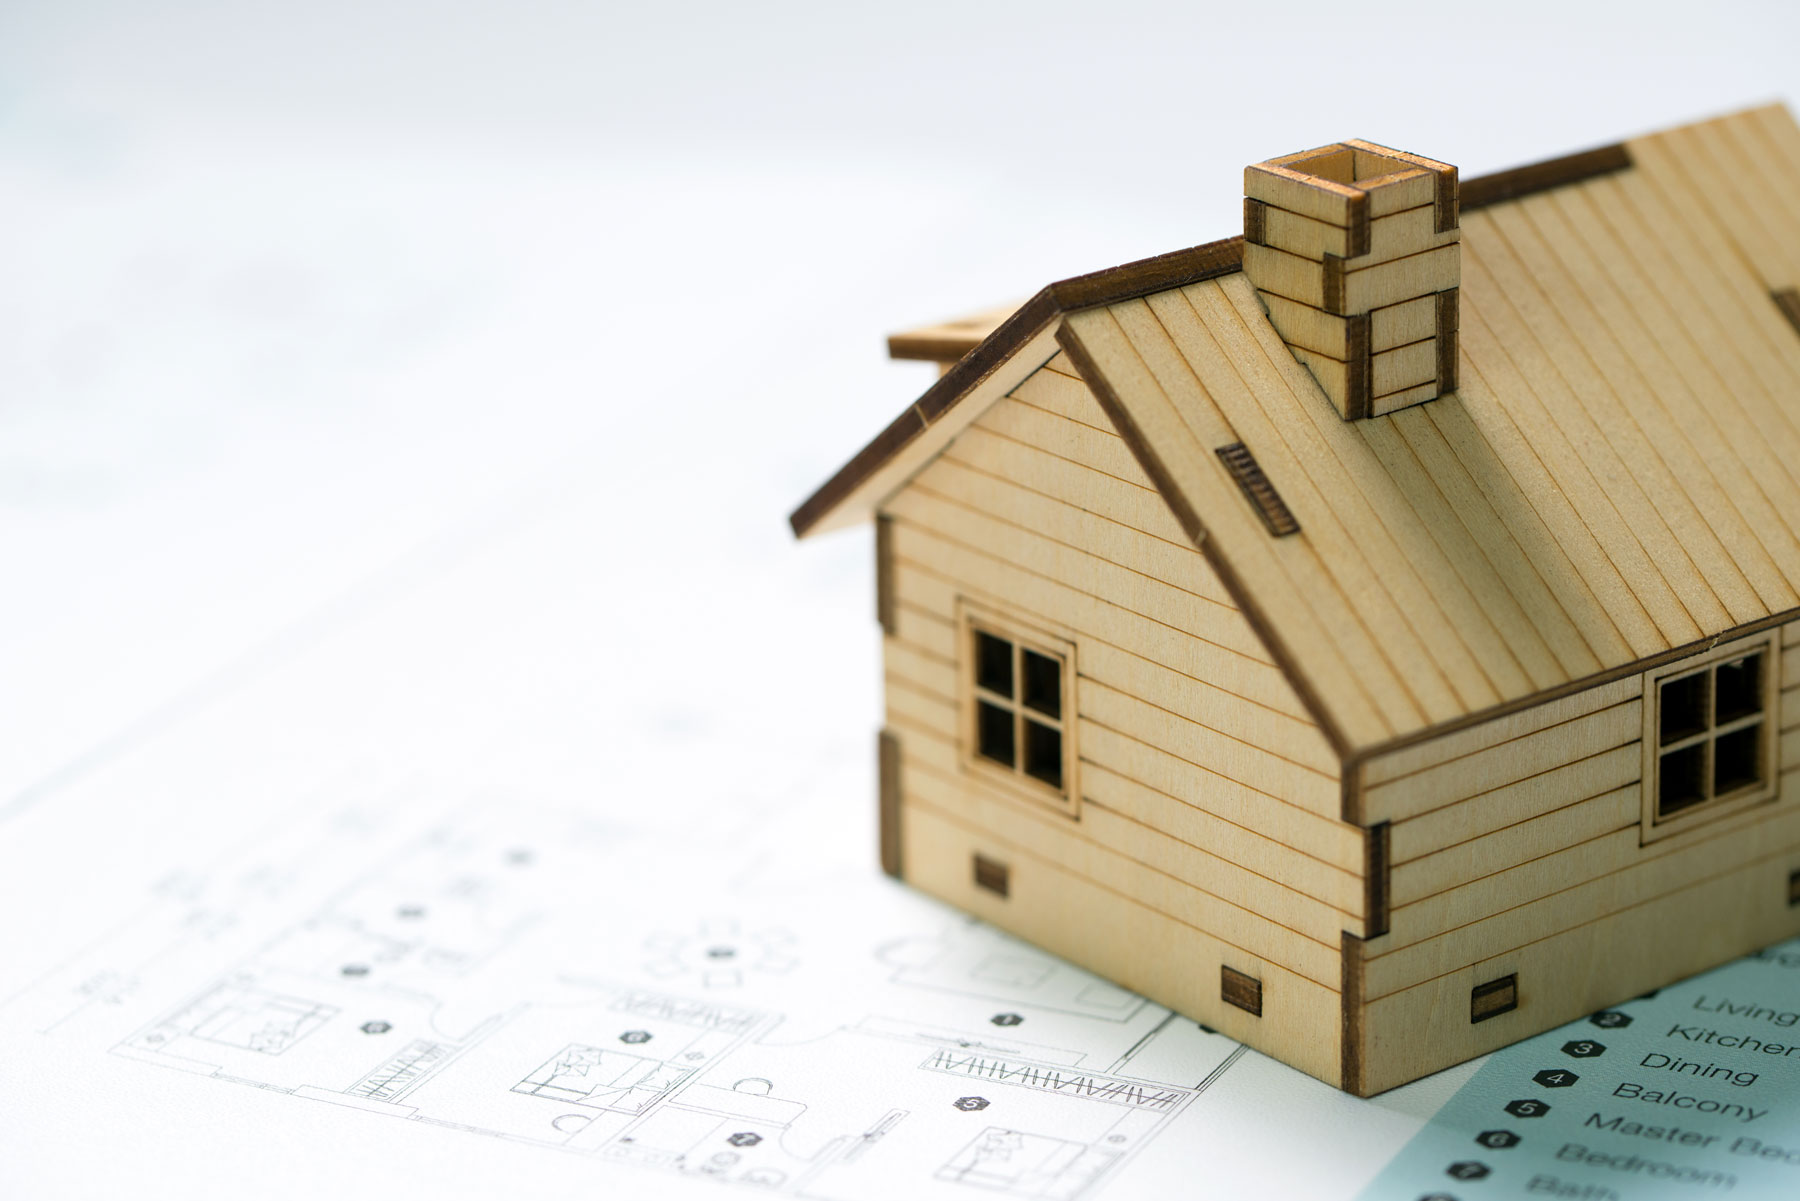 small wooden model of house on top of blueprints